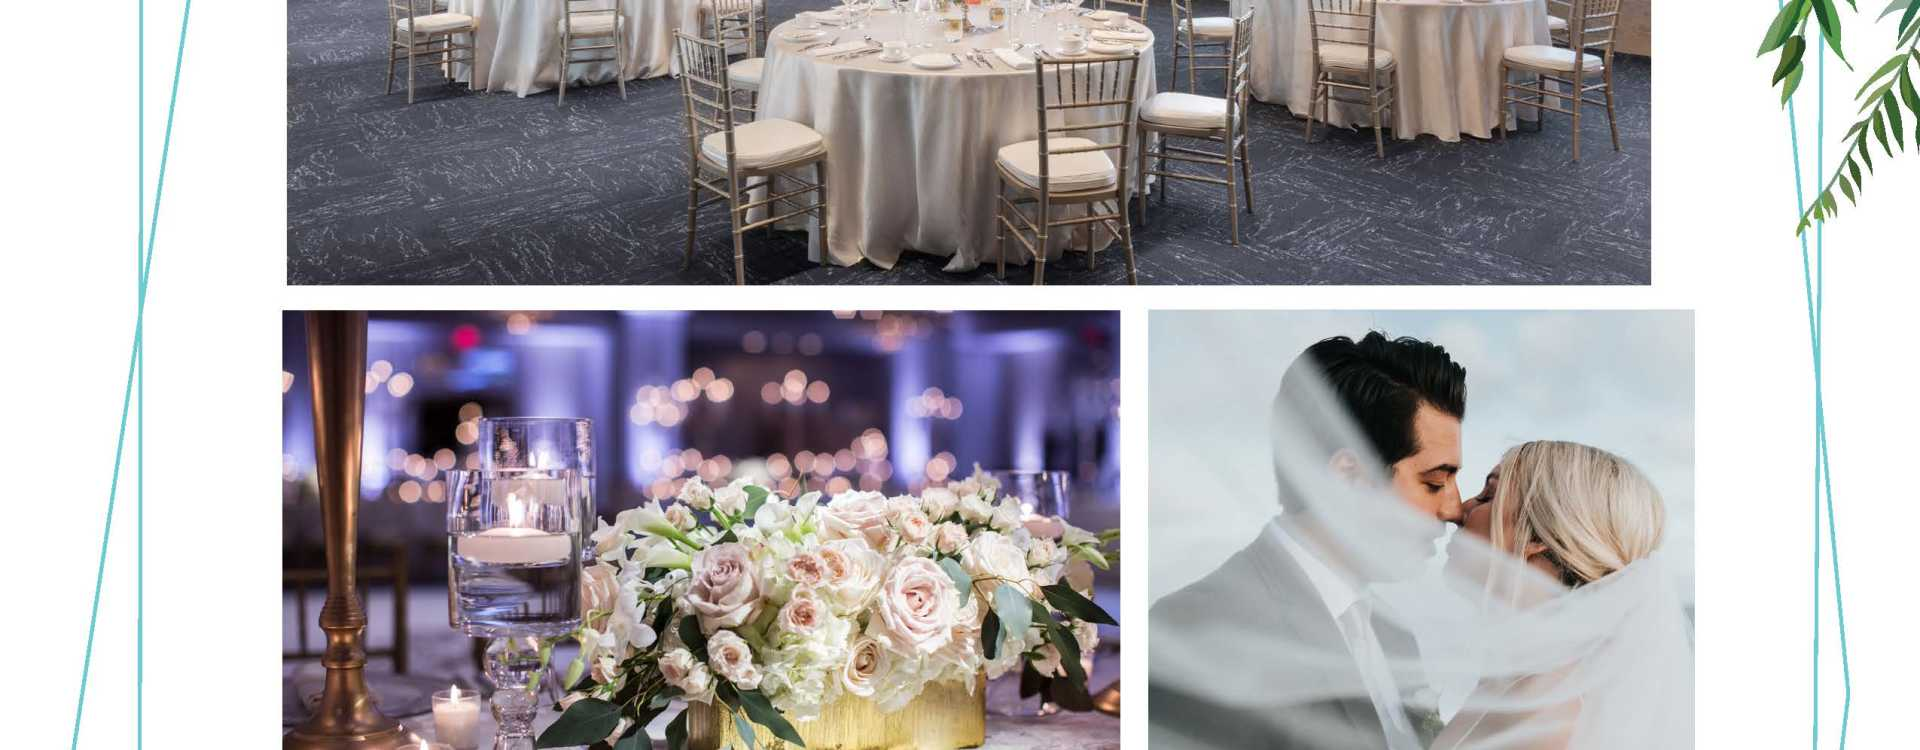 Hotel Interurban Celebrate Small Wedding Packages